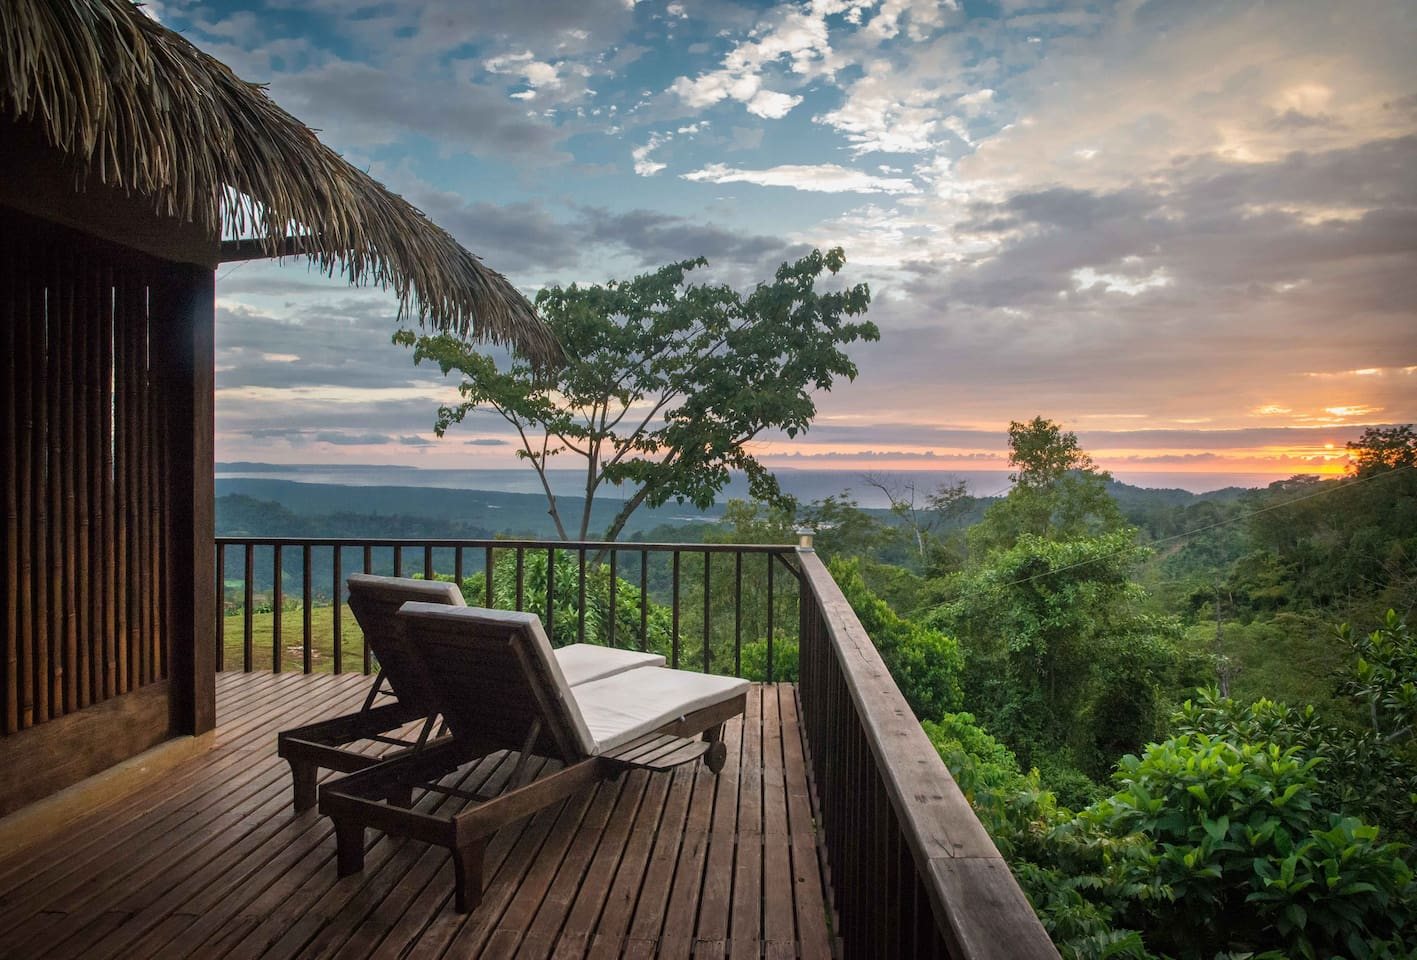 The front corner of the wrap-around balcony hangs over the jungle canopy to the right and offers spectacular sea & valley views straight ahead. A great place for a smoothie and bird & sunset watching from the comfort of one of our teak sun loungers